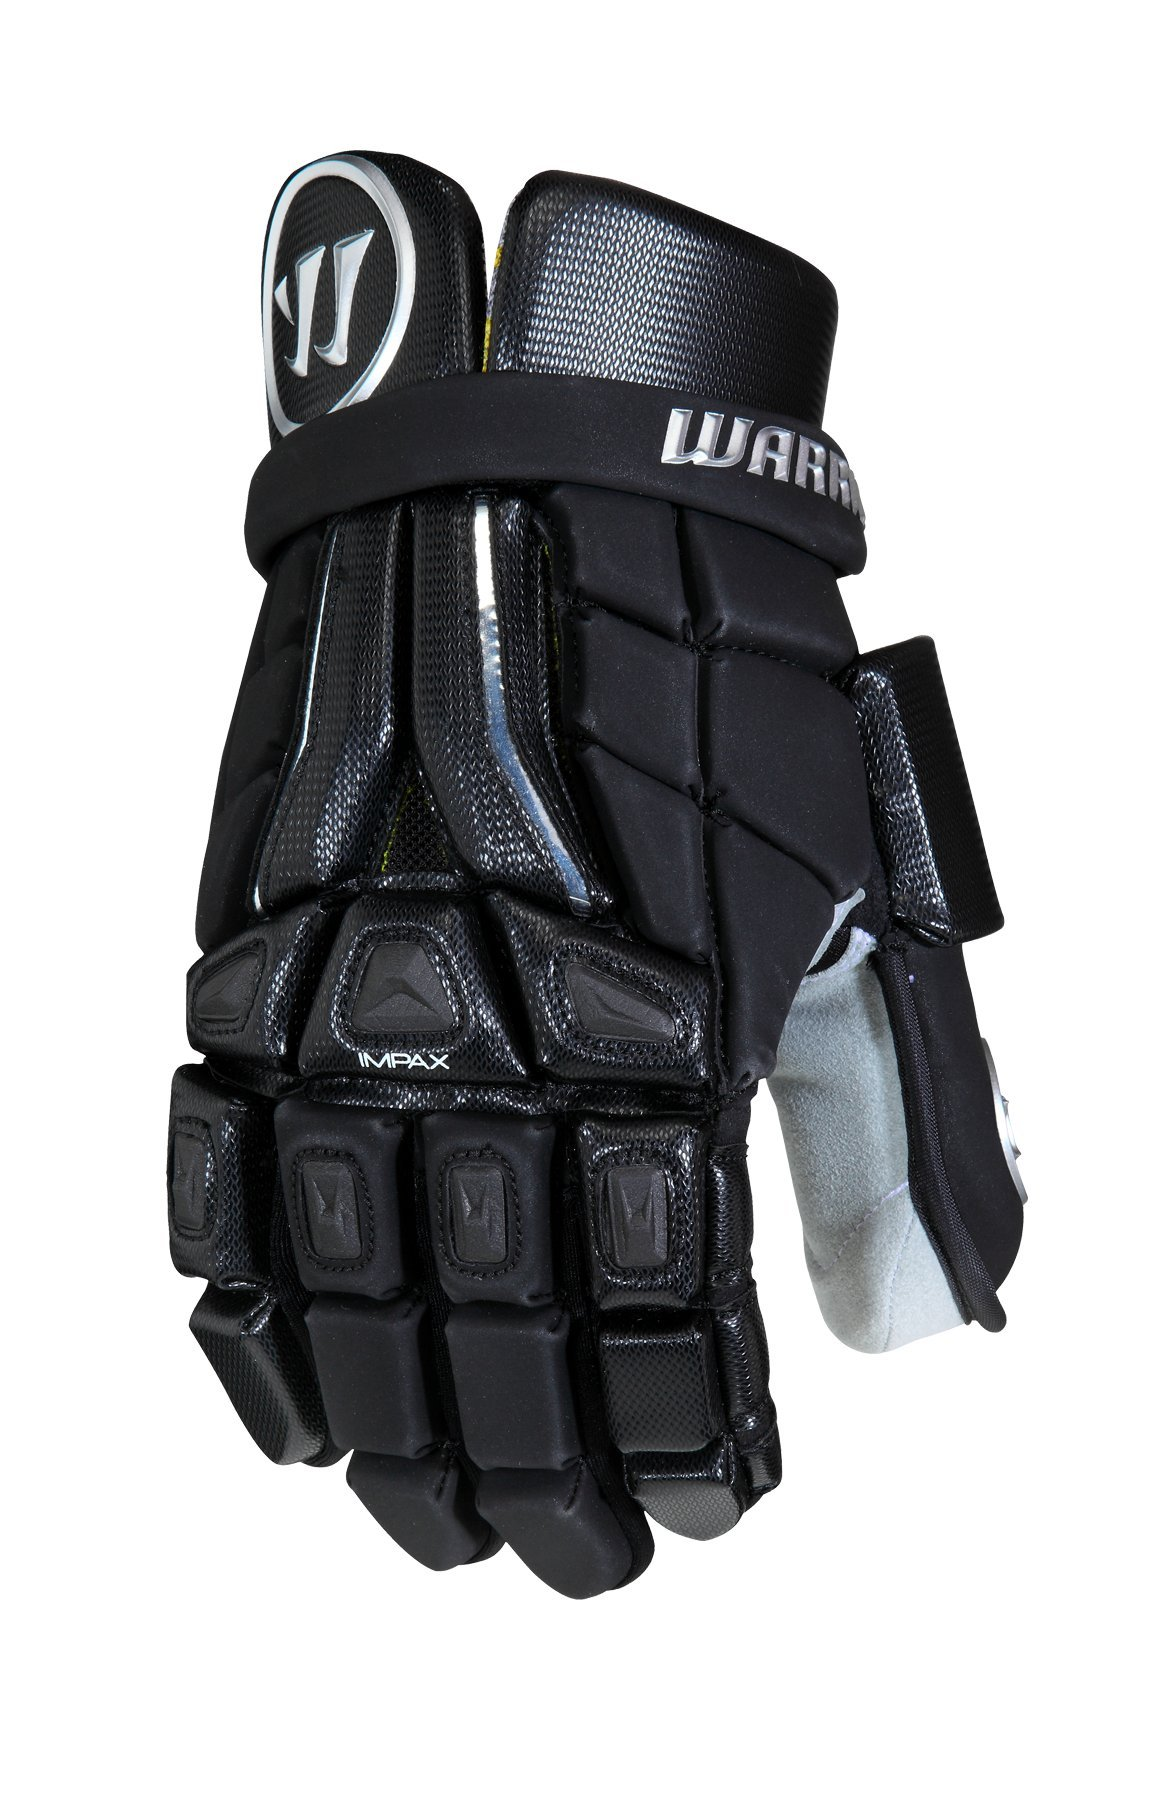 Warrior Nemesis Pro Gloves, Black, Medium